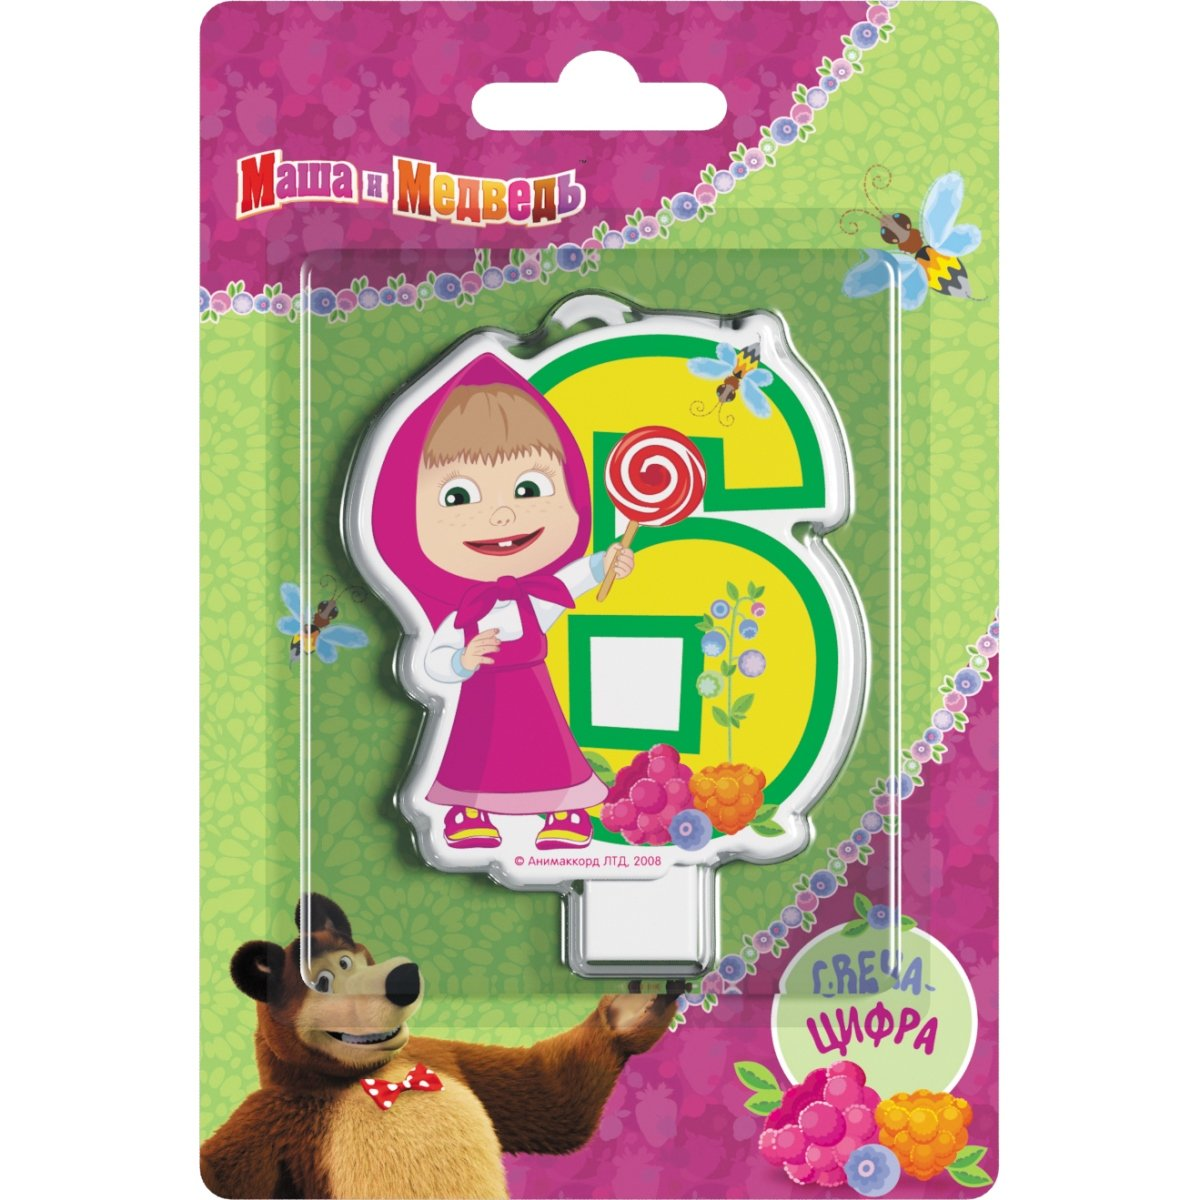 Сandle on a Cake Topper 6 Years Masha and the Bear Must Have Accessories for the Party supplies and Birthday Masha y el Oso para niños by Masha and the Bear